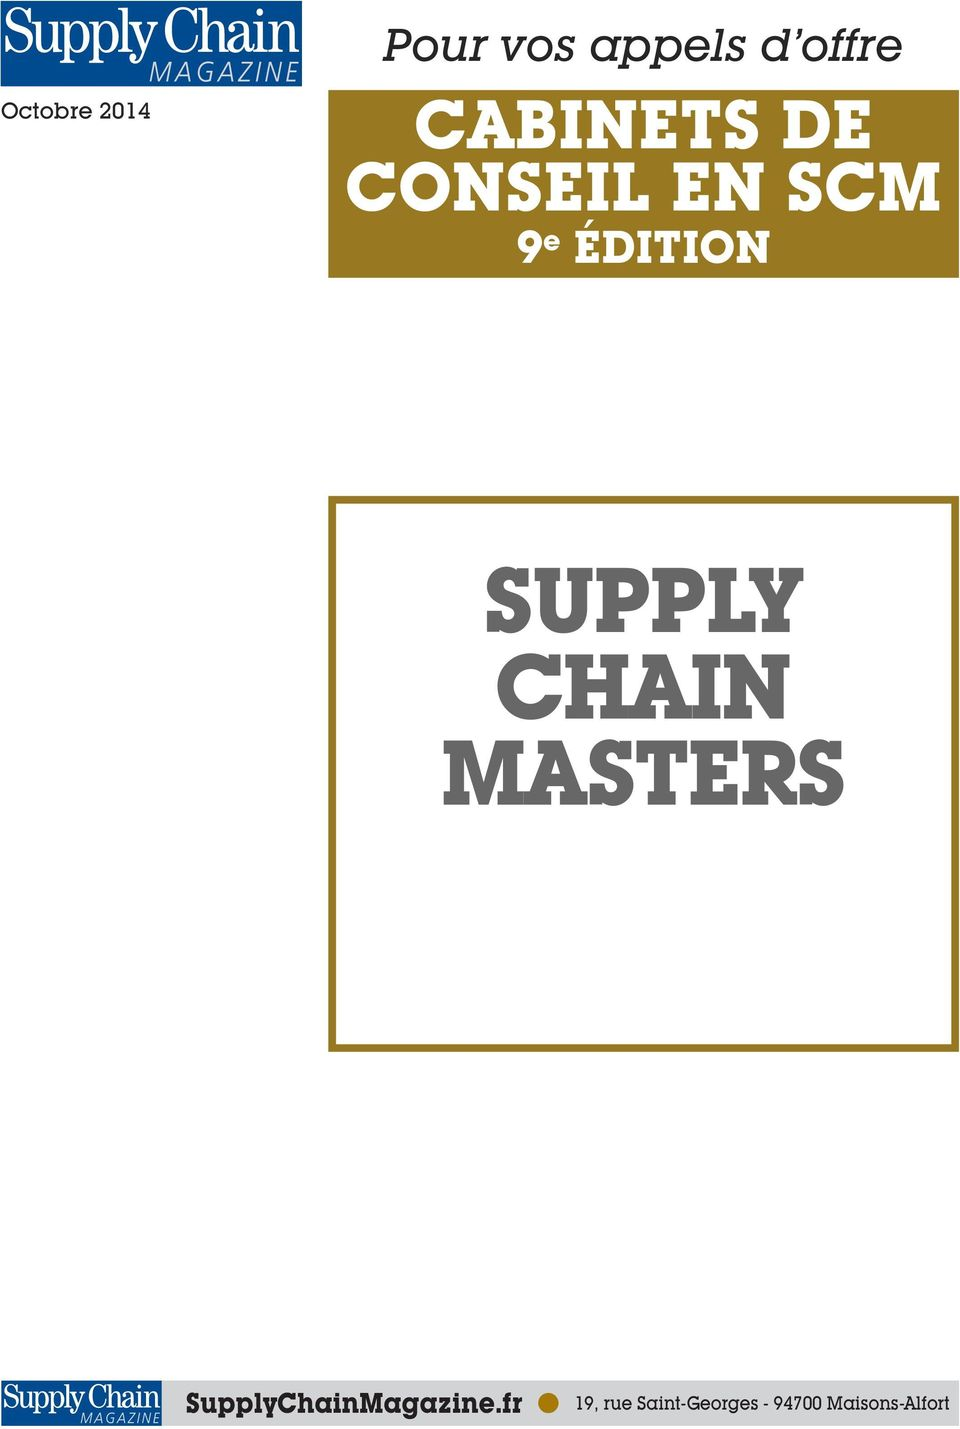 SUPPLY CHAIN MASTERS SupplyChainMagazine.